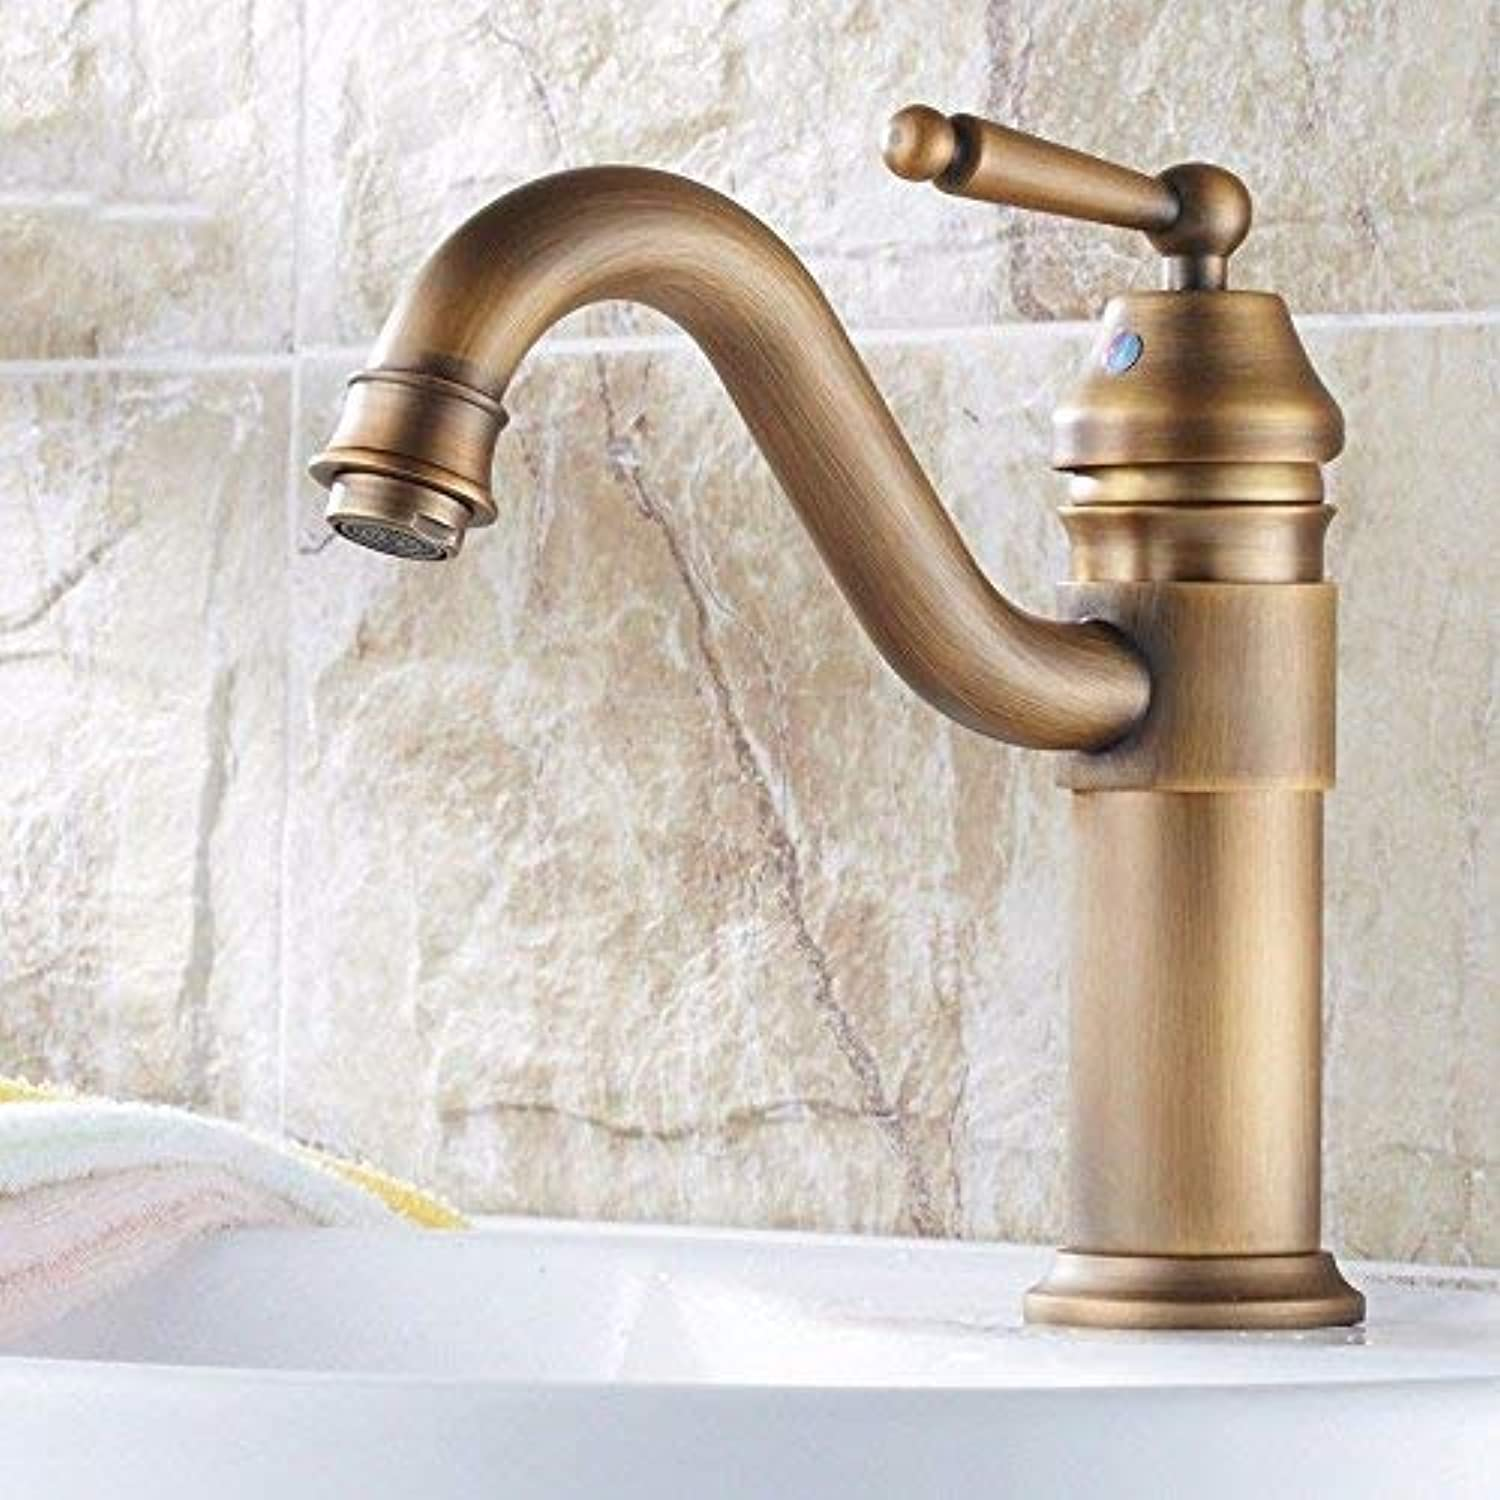 Oudan Sink Taps European style copper Hot and cold black bathroom Brushed Heightening Single cold Seated